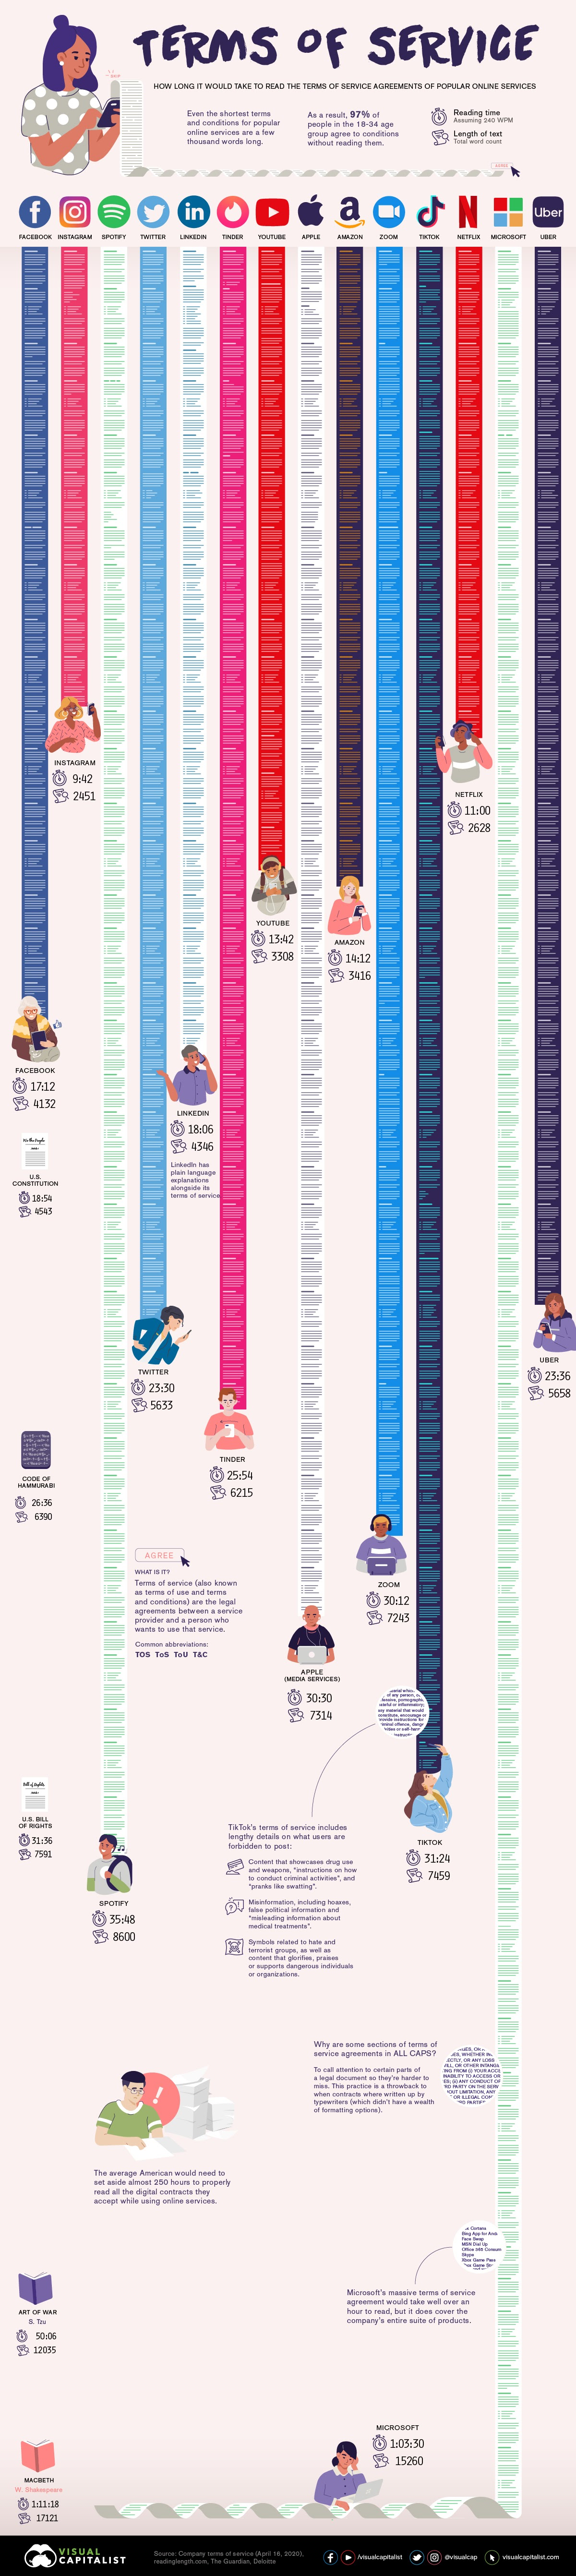 Terms of Service: The Length of Common Digital Contracts #infographic